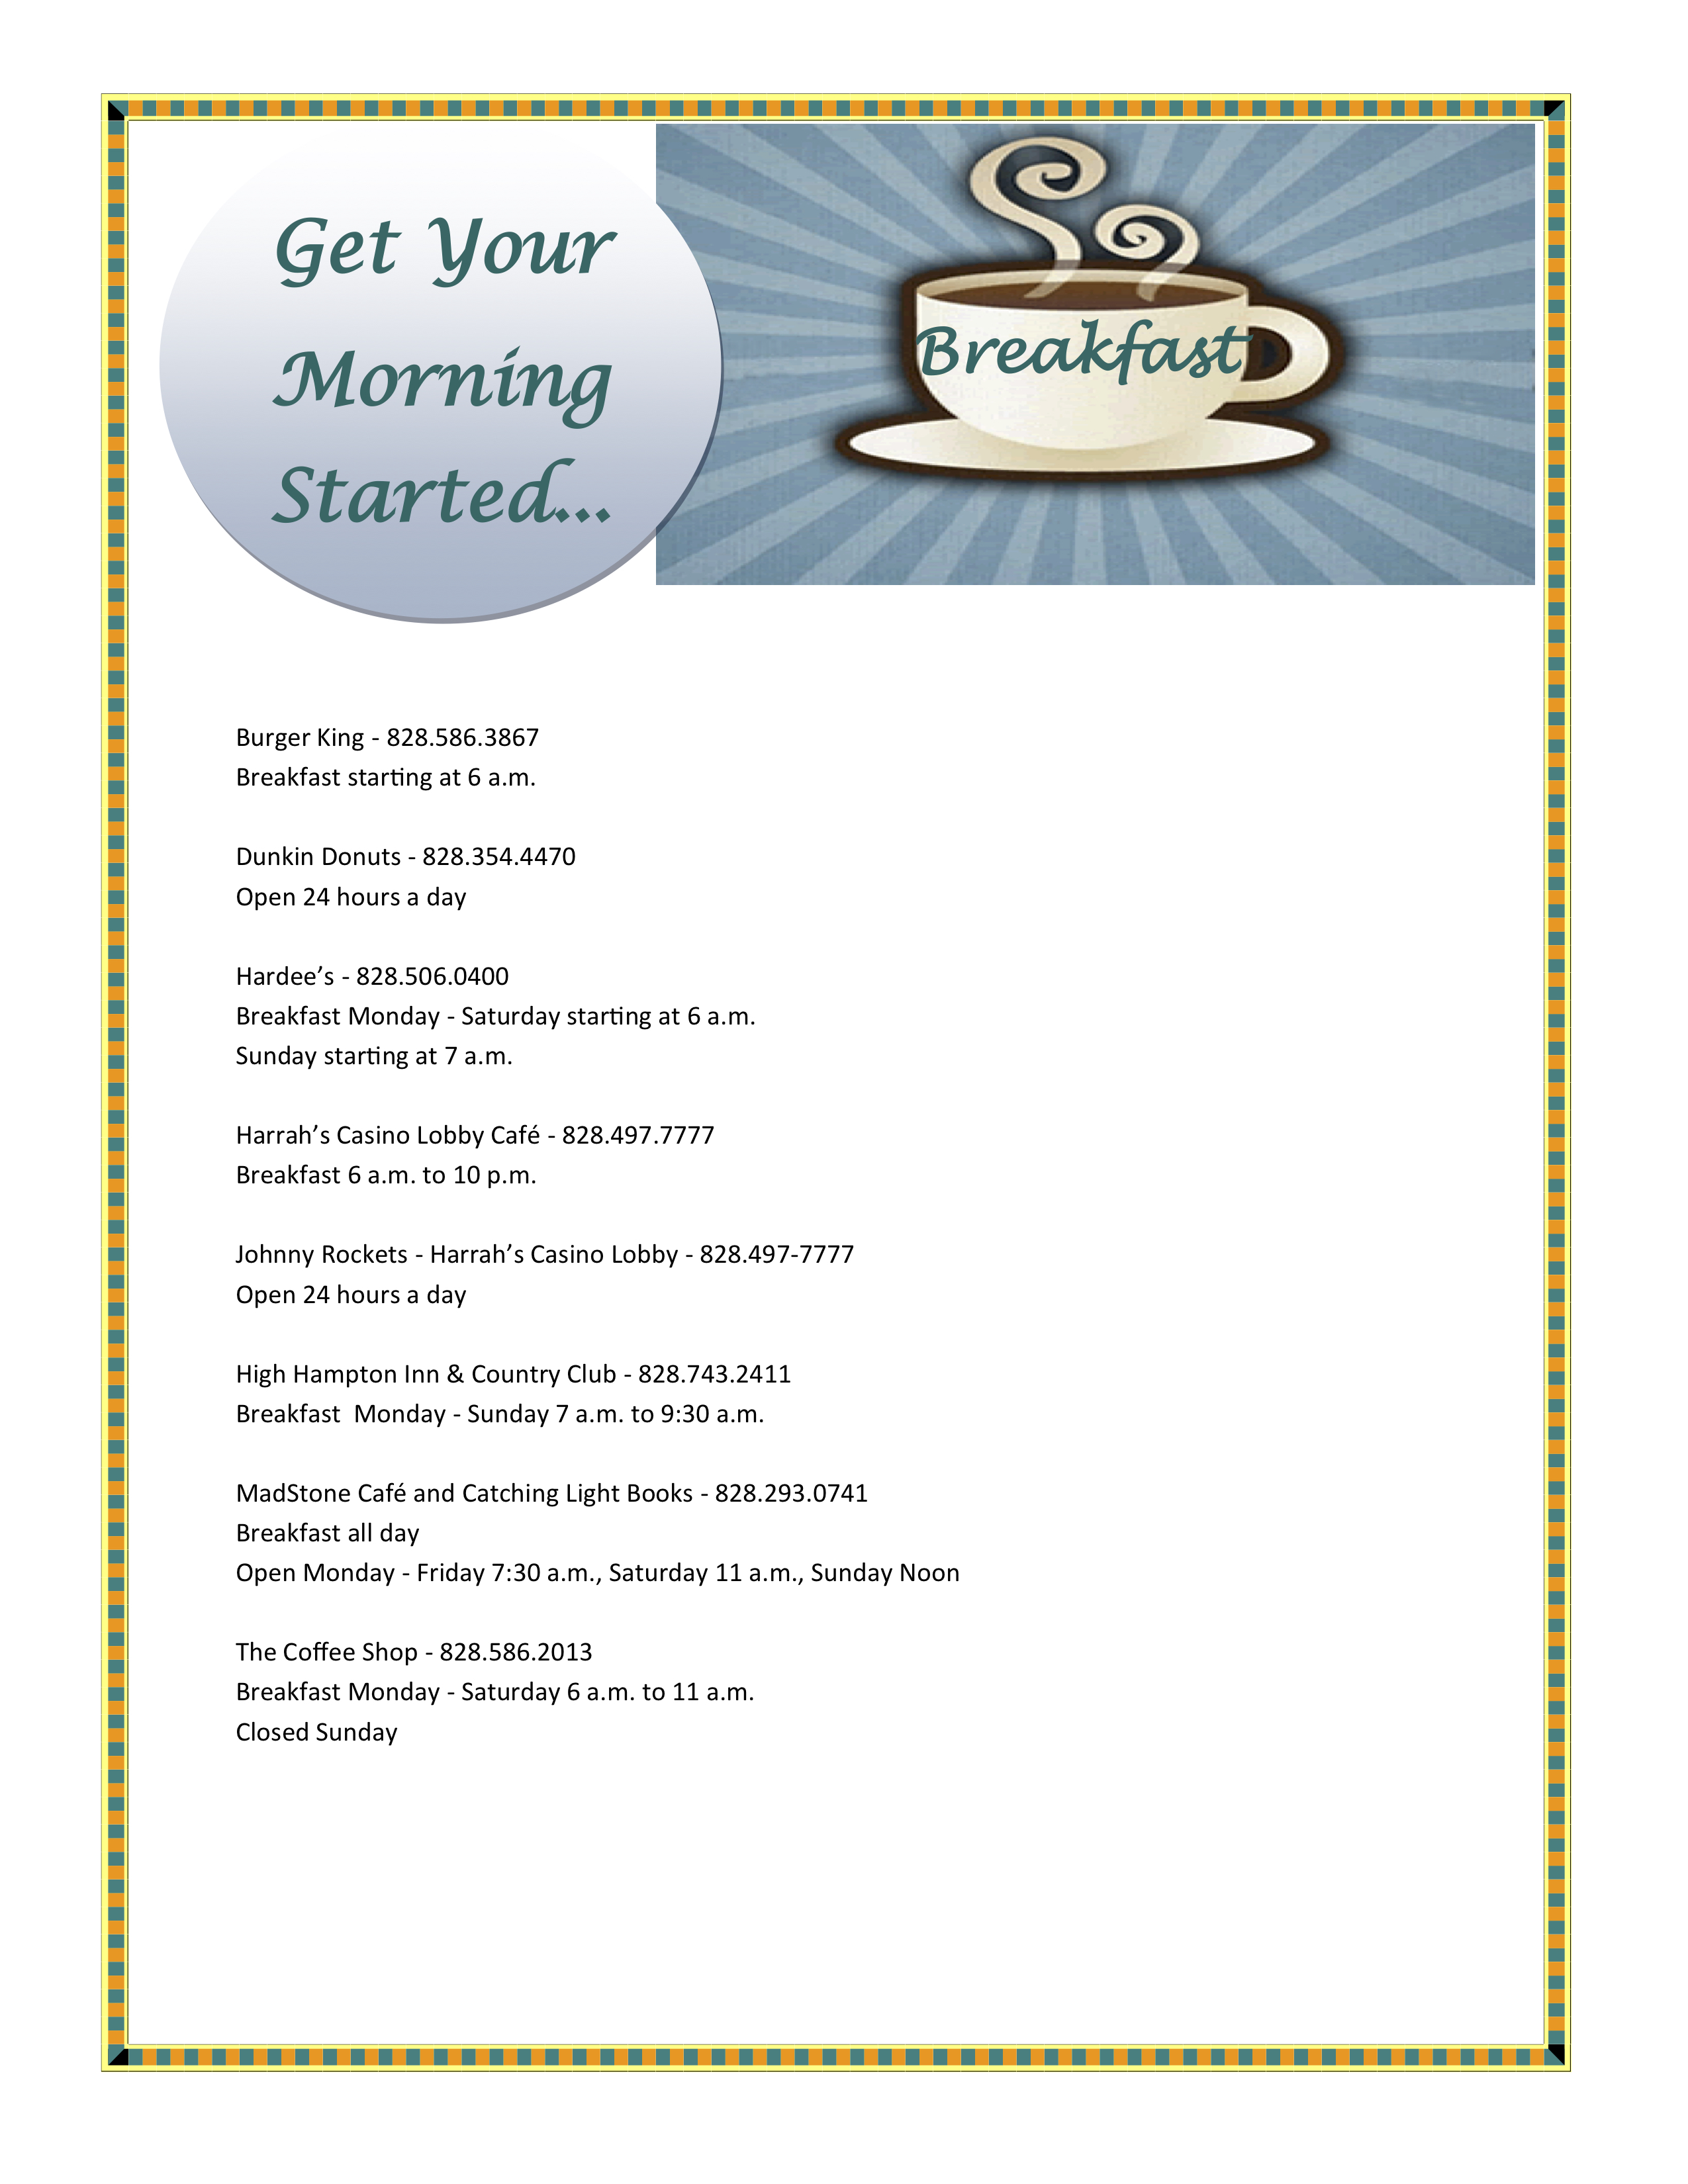 Brunch and Breakfast List - Jackson County Chamber & Visitor Center, NC